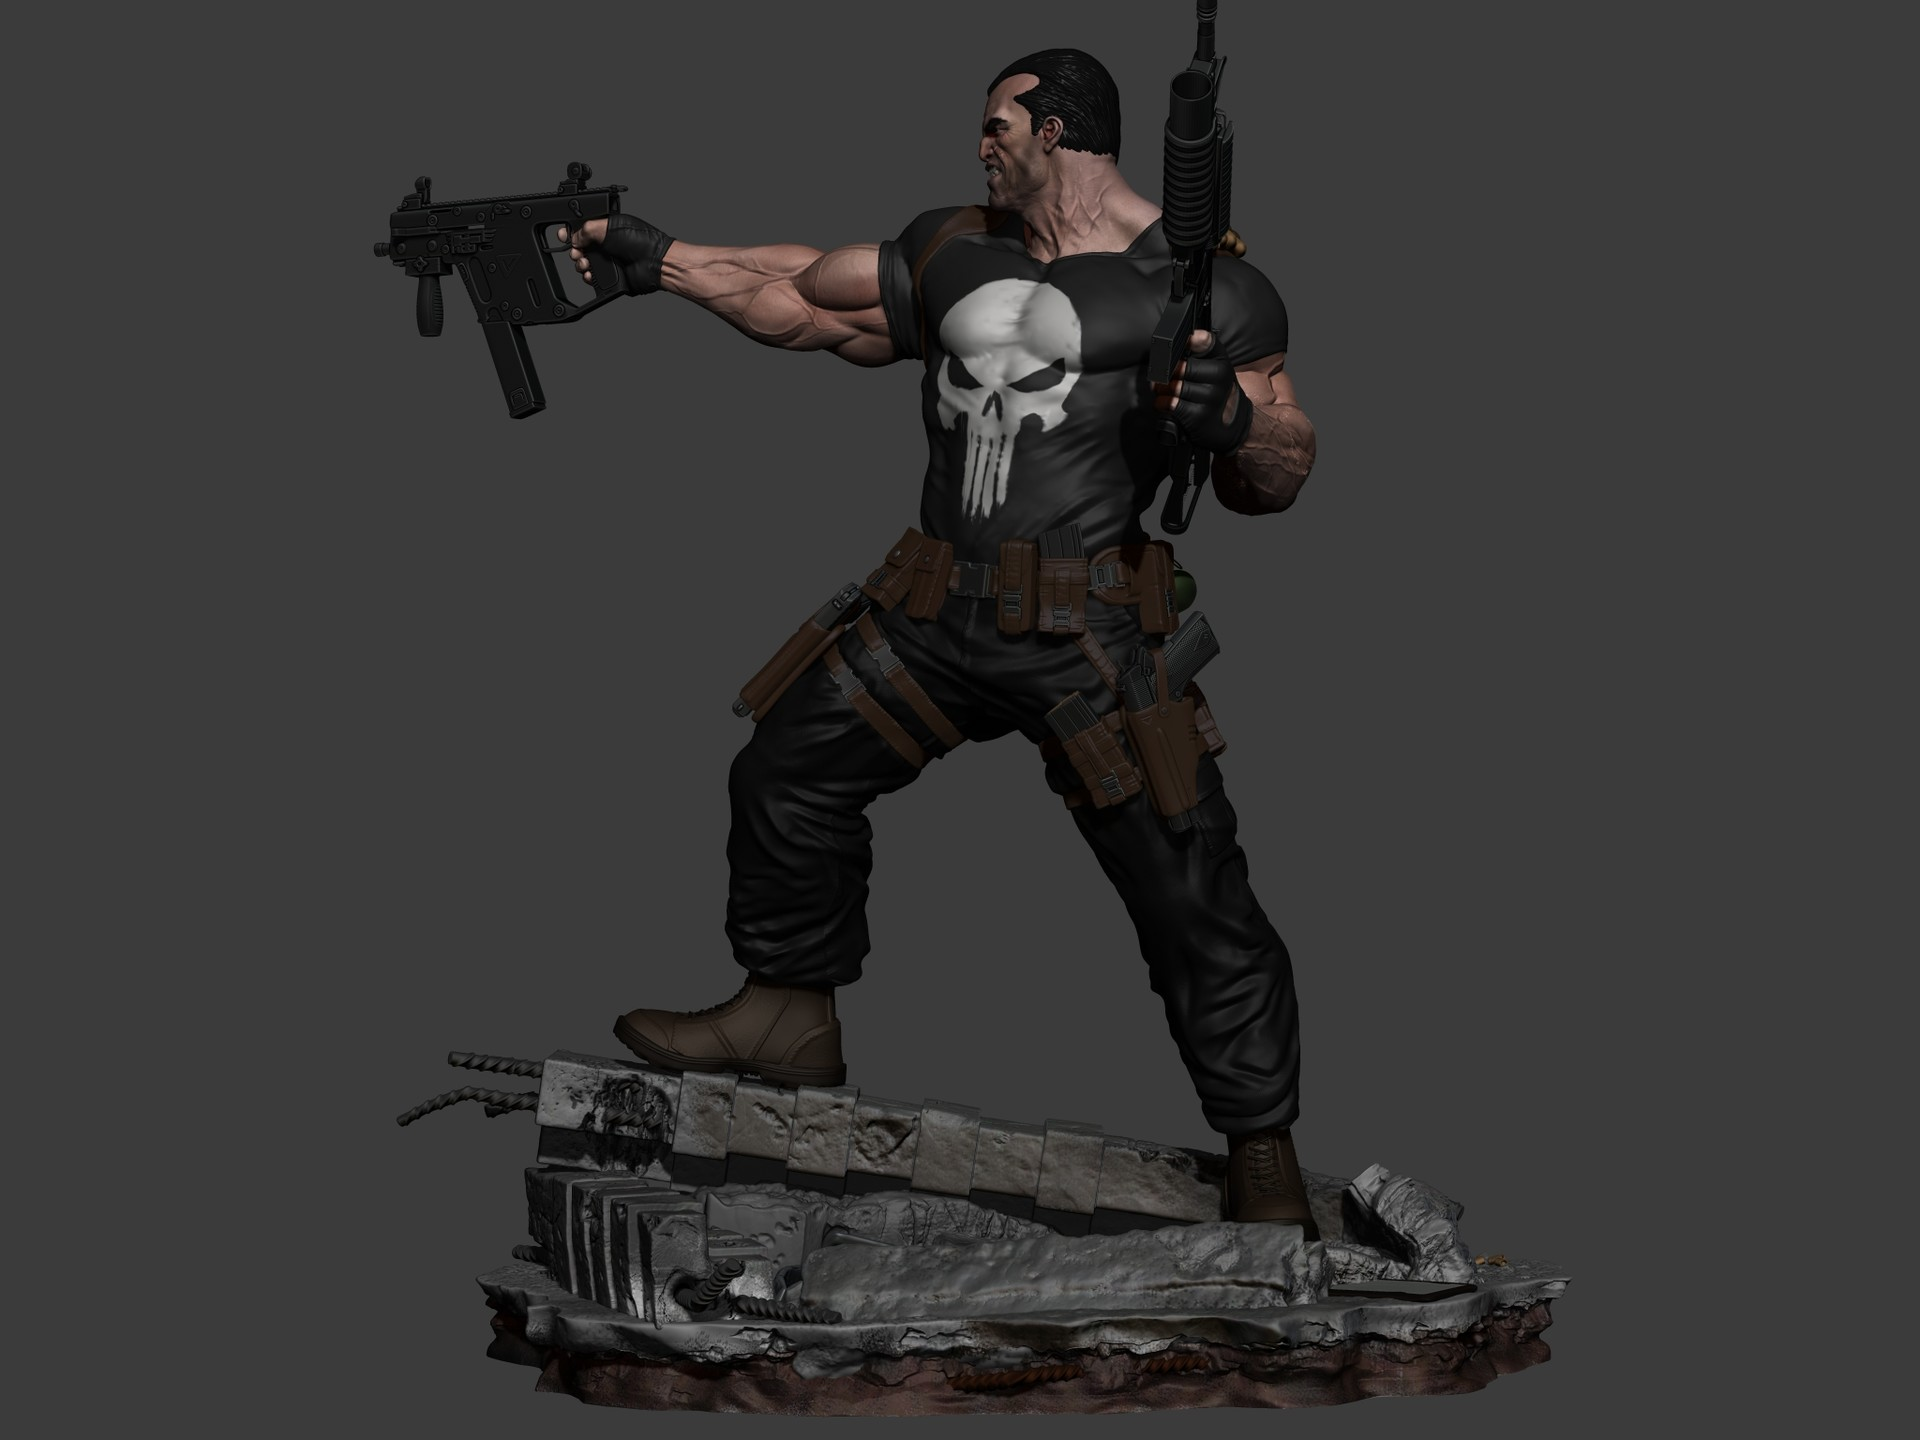 Franco carlesimo punisher prev 008